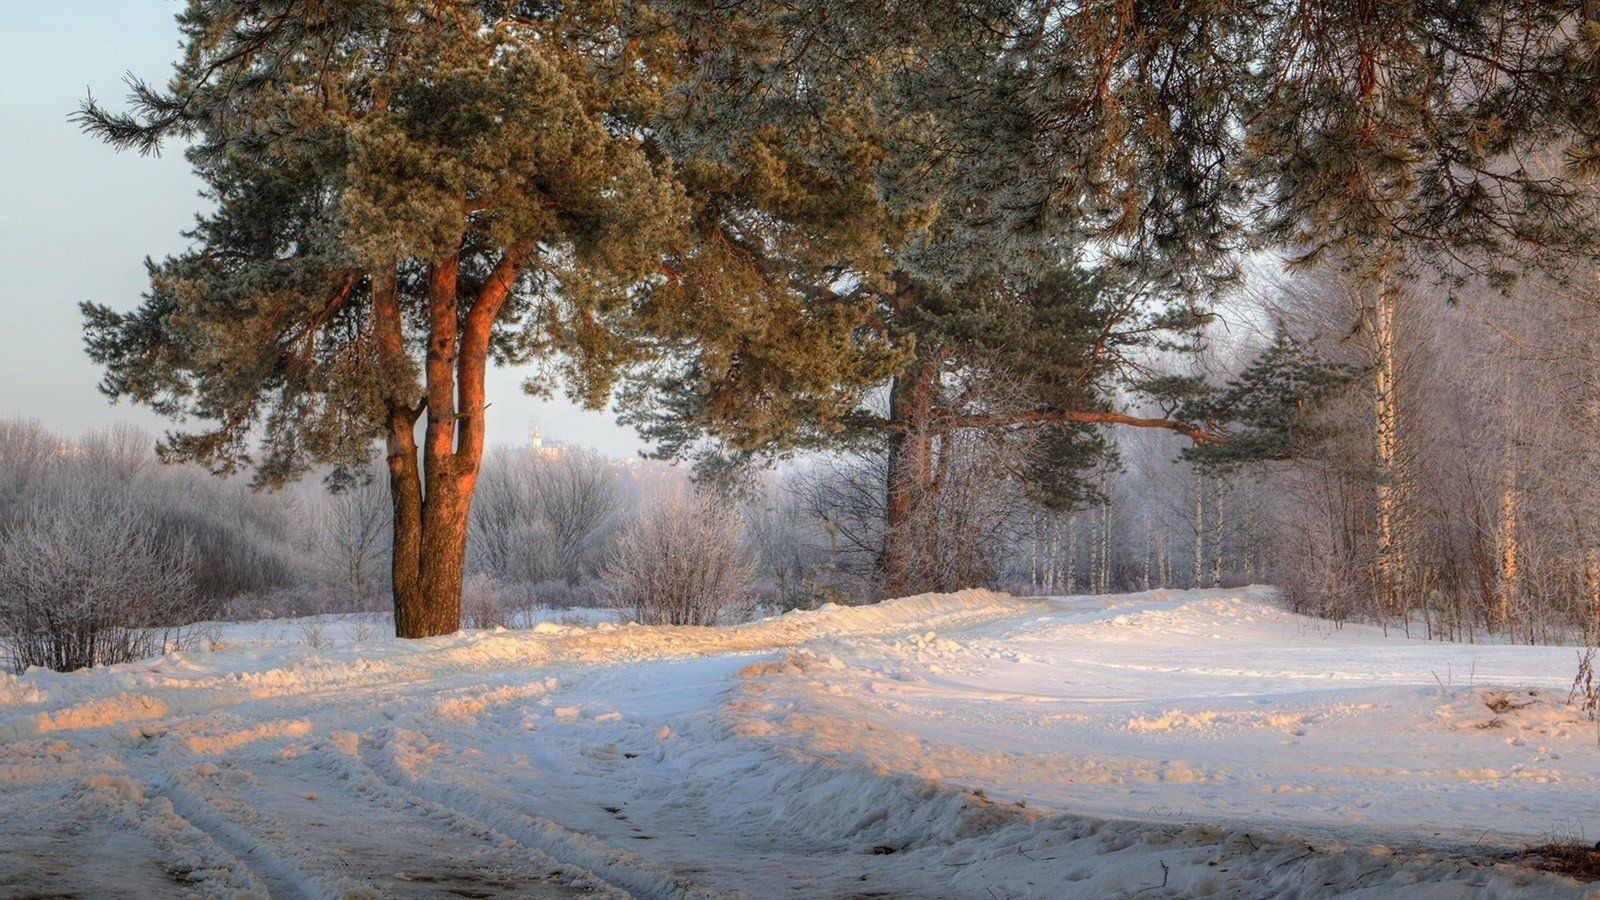 1600x900 pictures,landscape, hd, trees, winter, morning, fresh, russia, road ...